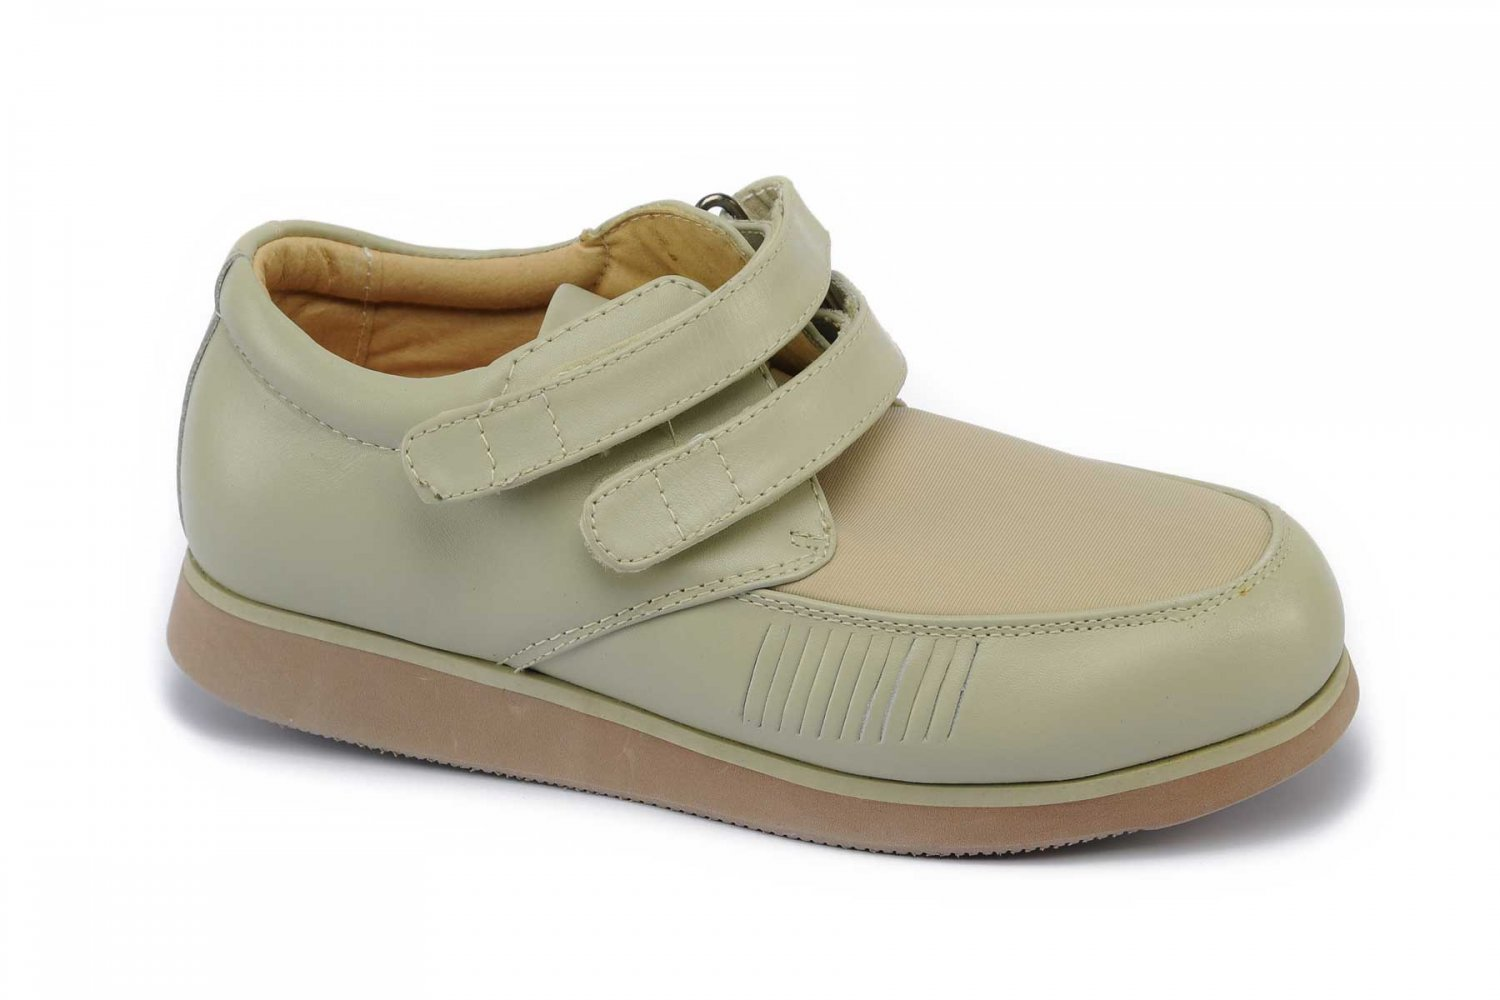 Mt. Emey 618 - Women's Lycra Casual Diabetic Shoes by Apis - Beige Main Angle